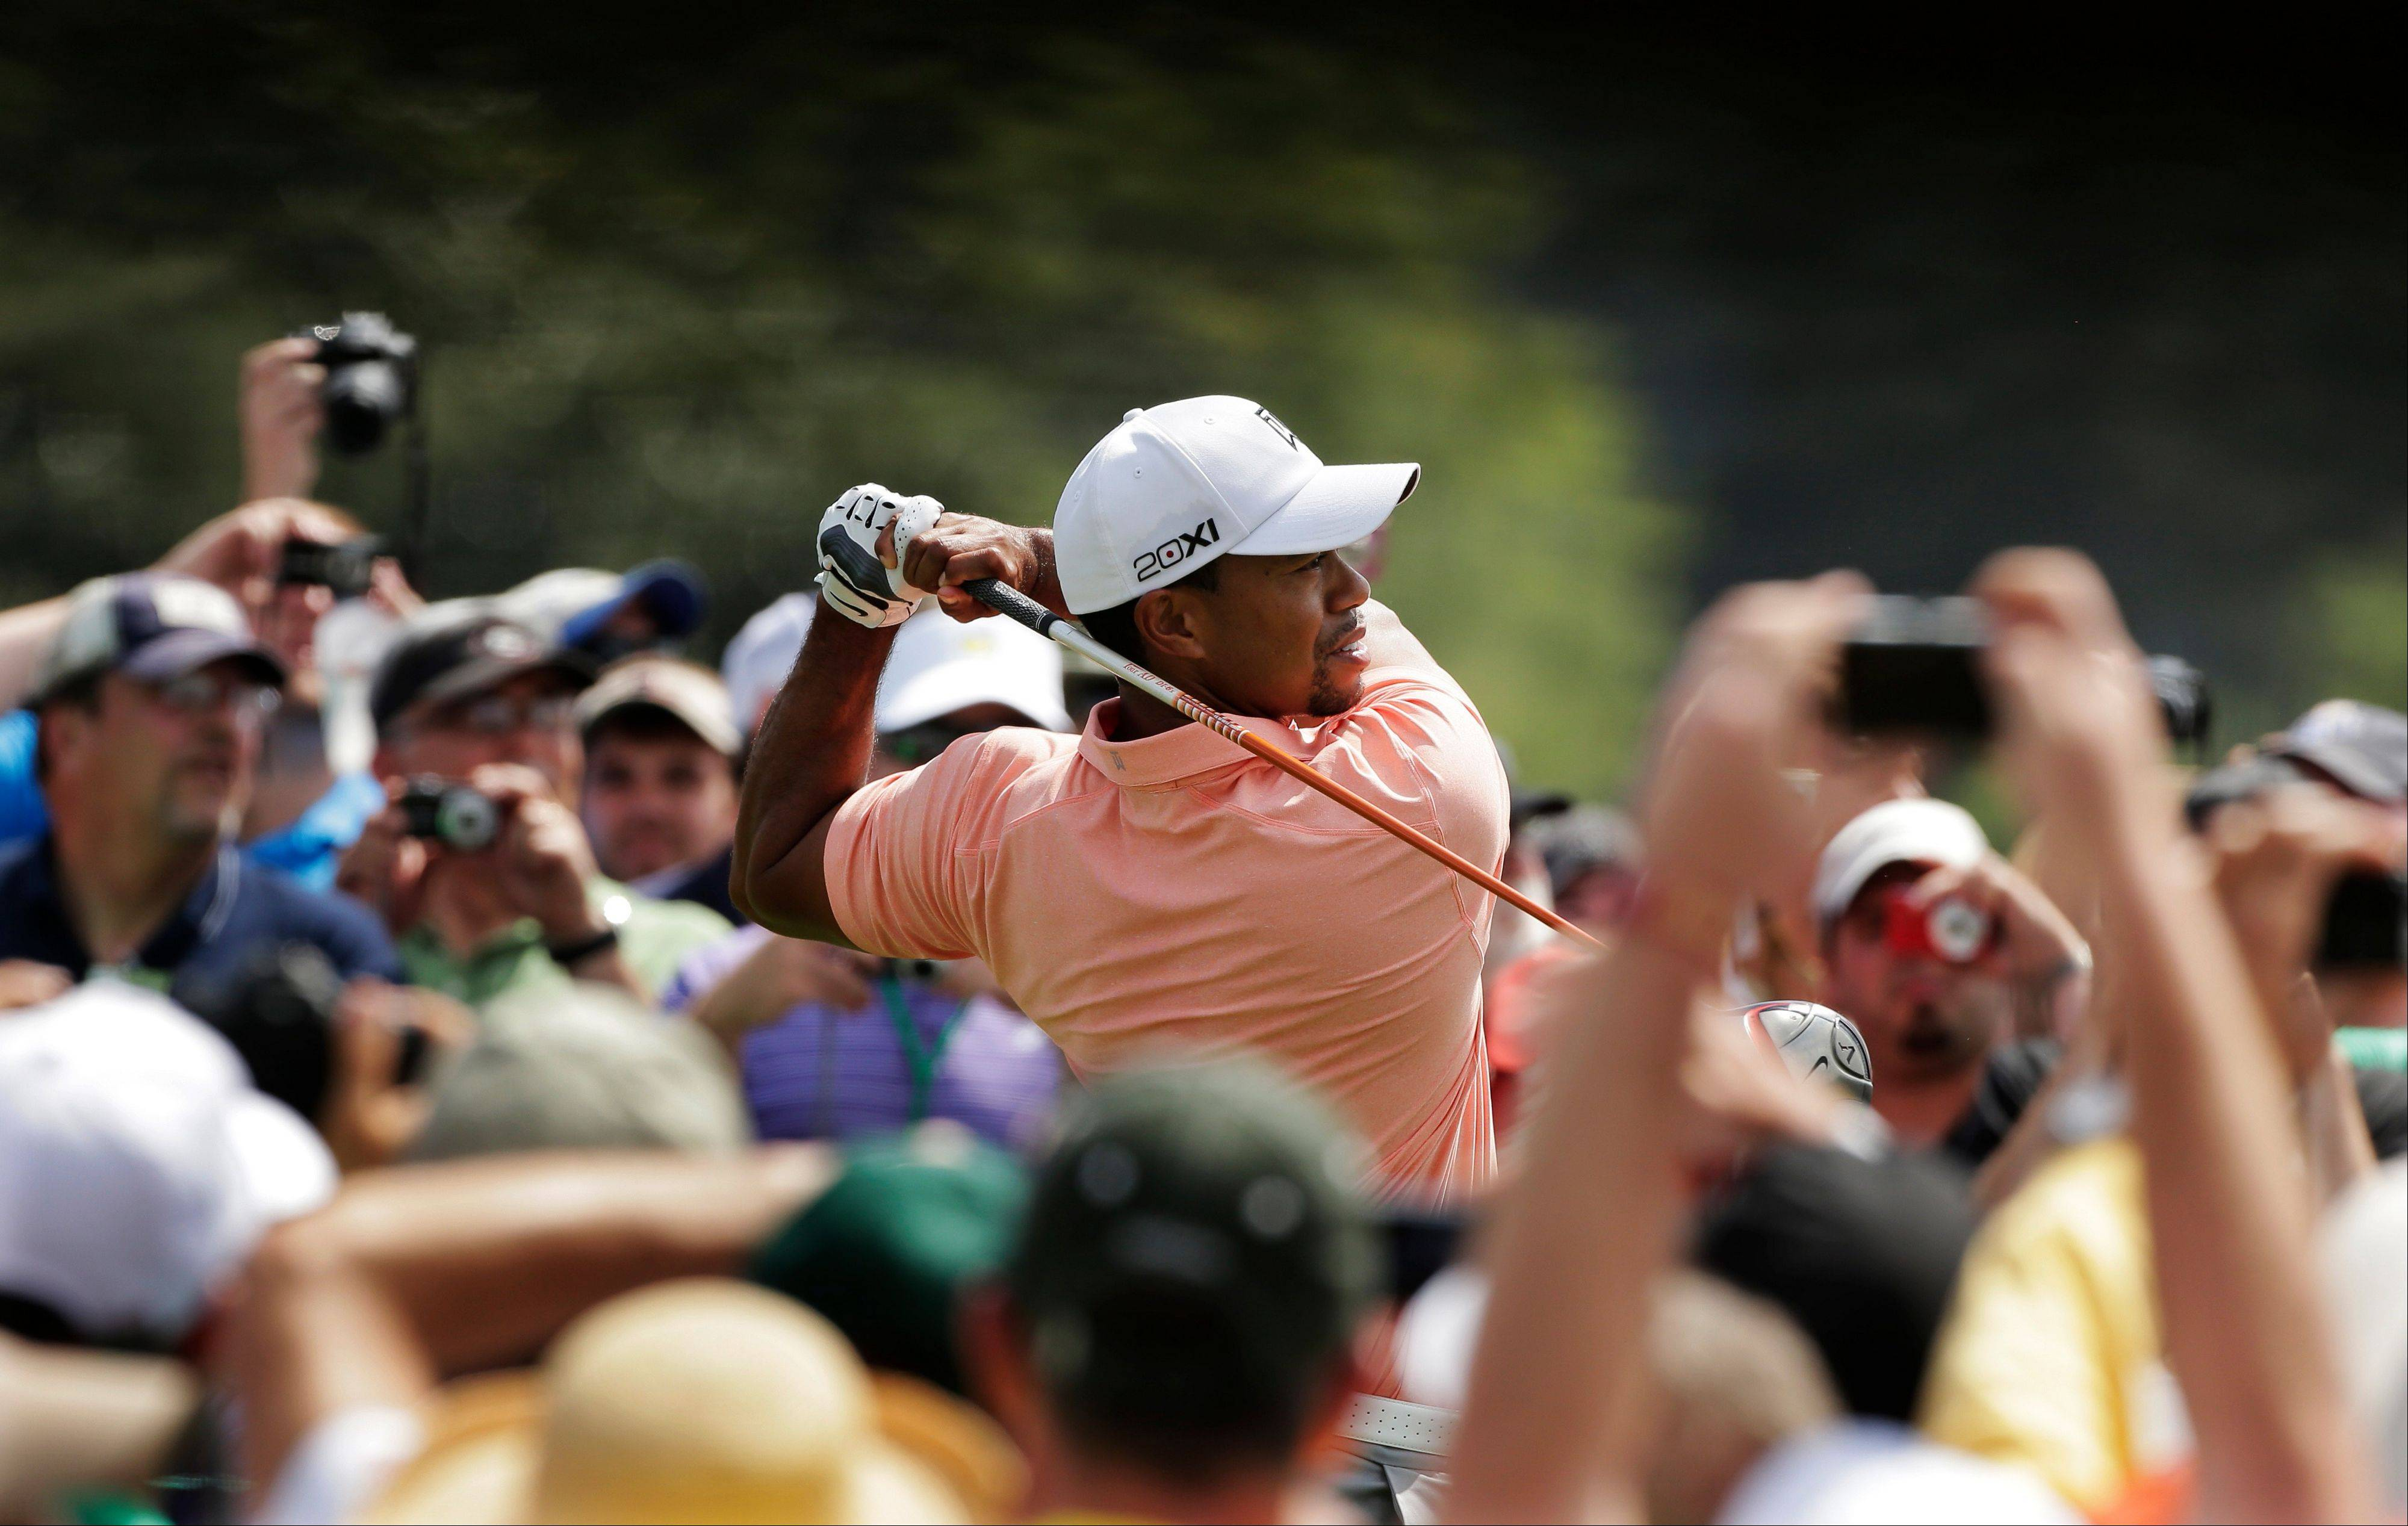 Tiger Woods tees off on the first hole during a practice round for the Masters golf tournament Tuesday in Augusta, Ga.